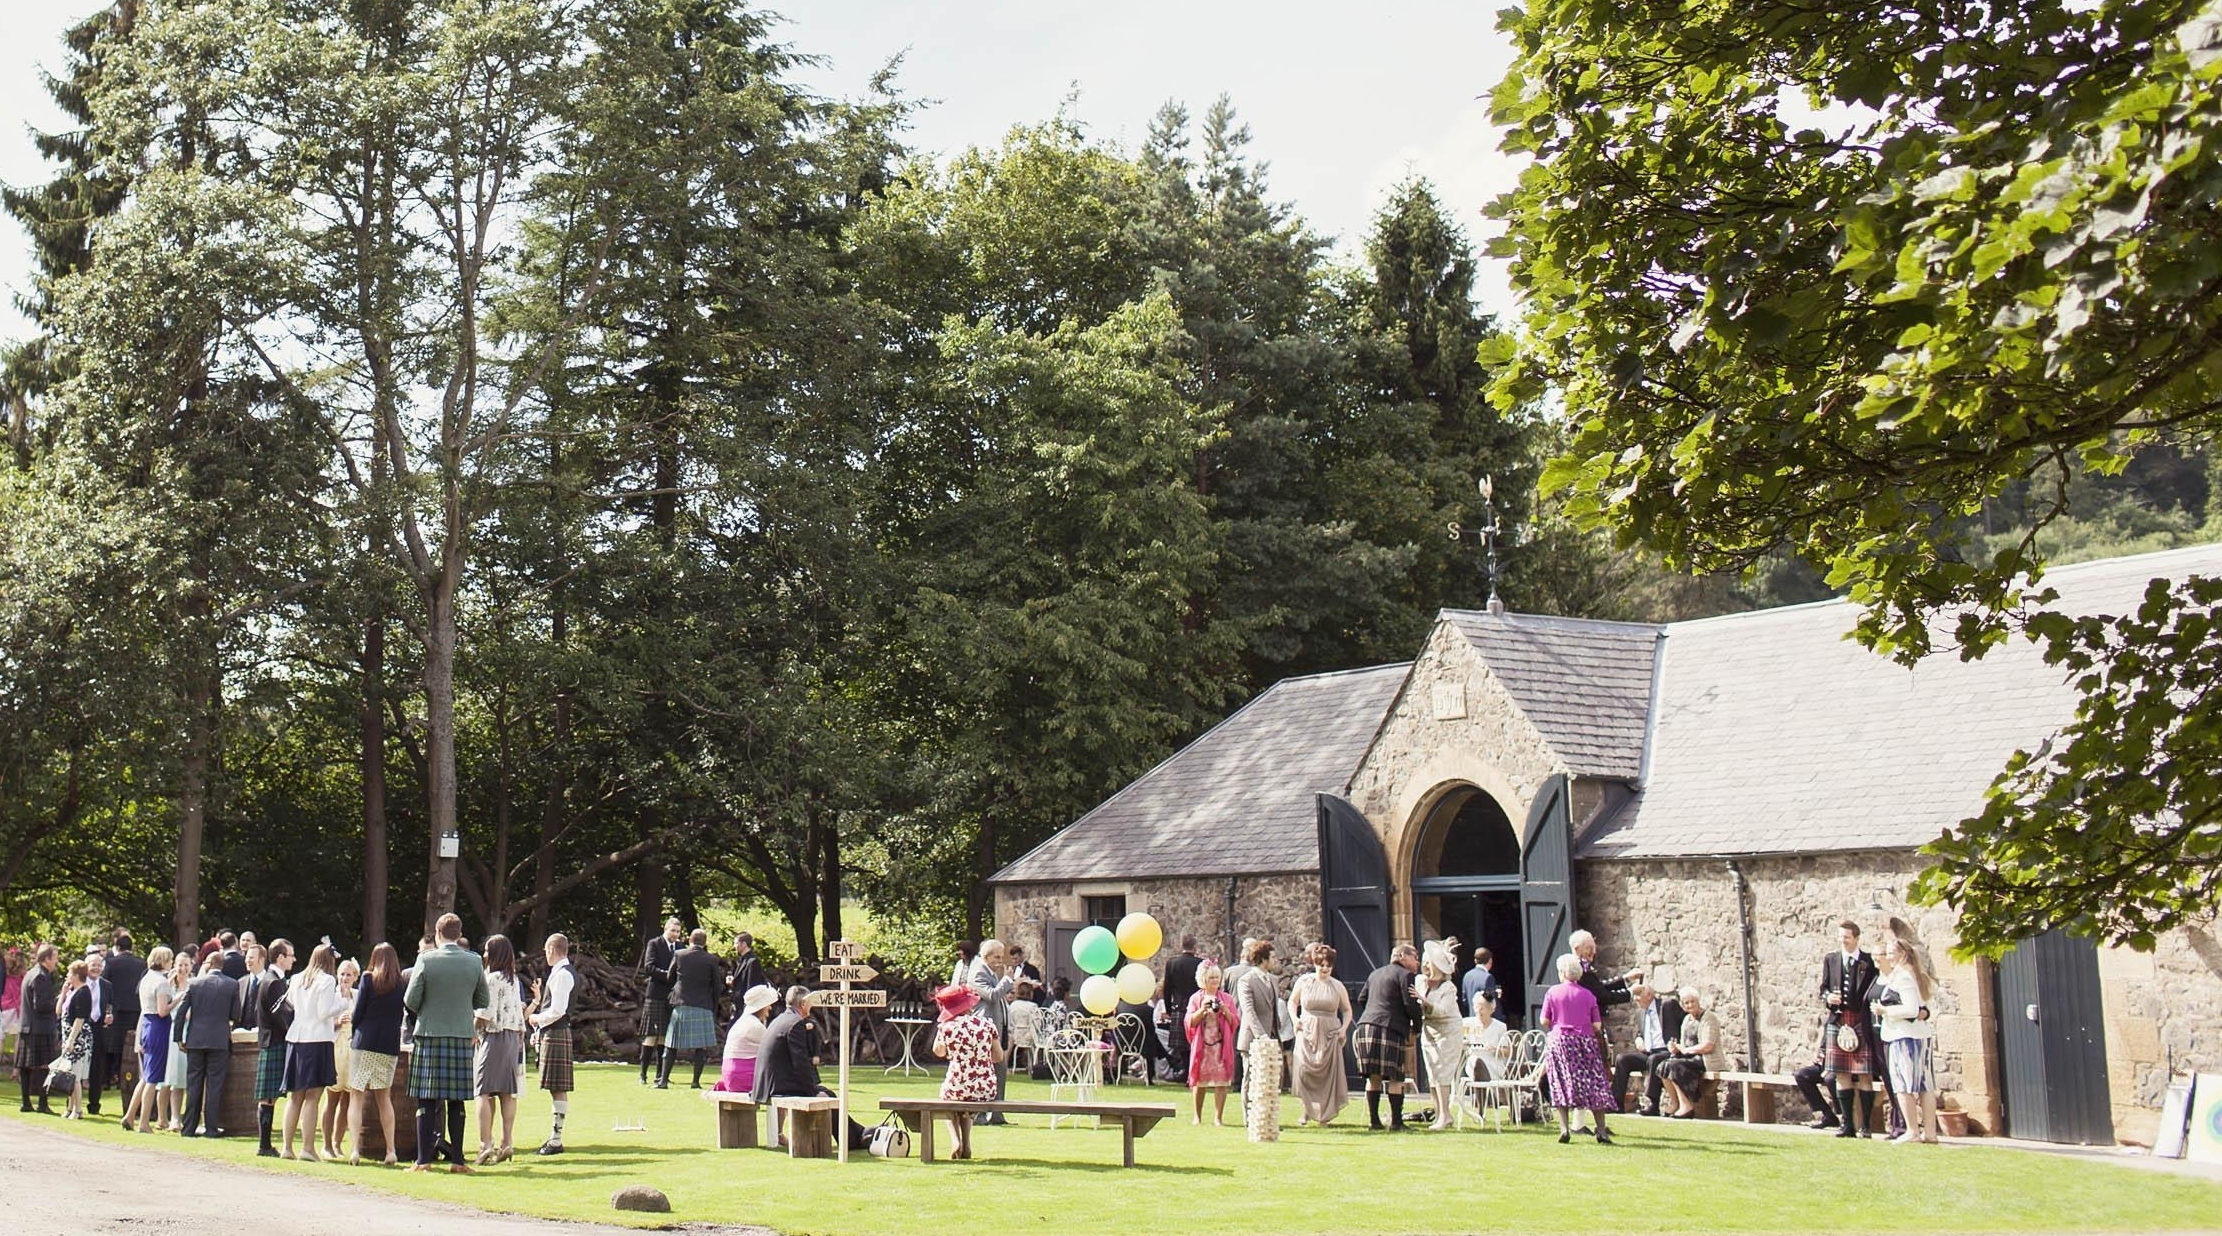 the byre at inchyra harry taylor \u0026 co chartered buildingour clients wished to retain this appeal and create a venue that would hark back to the barn dances of the past